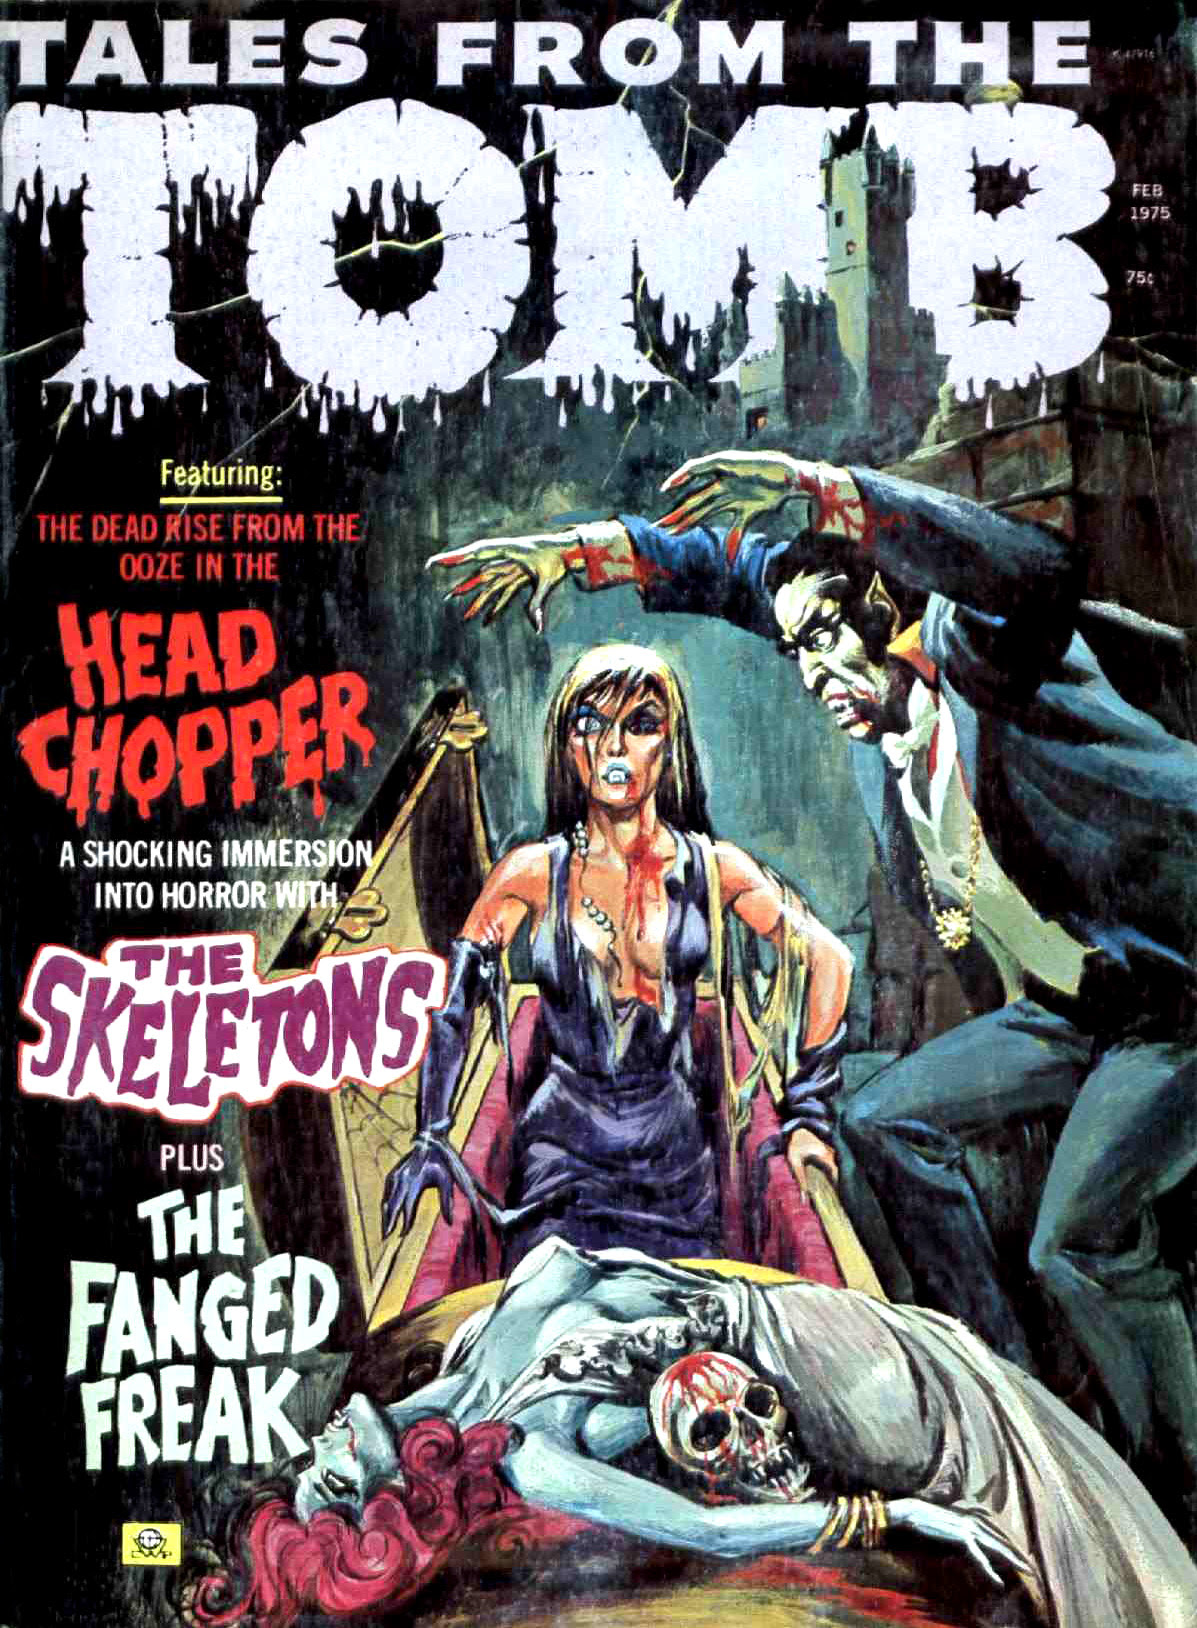 Tales from the Tomb - Vol. 7 #1 (Eerie Publications, 1975)